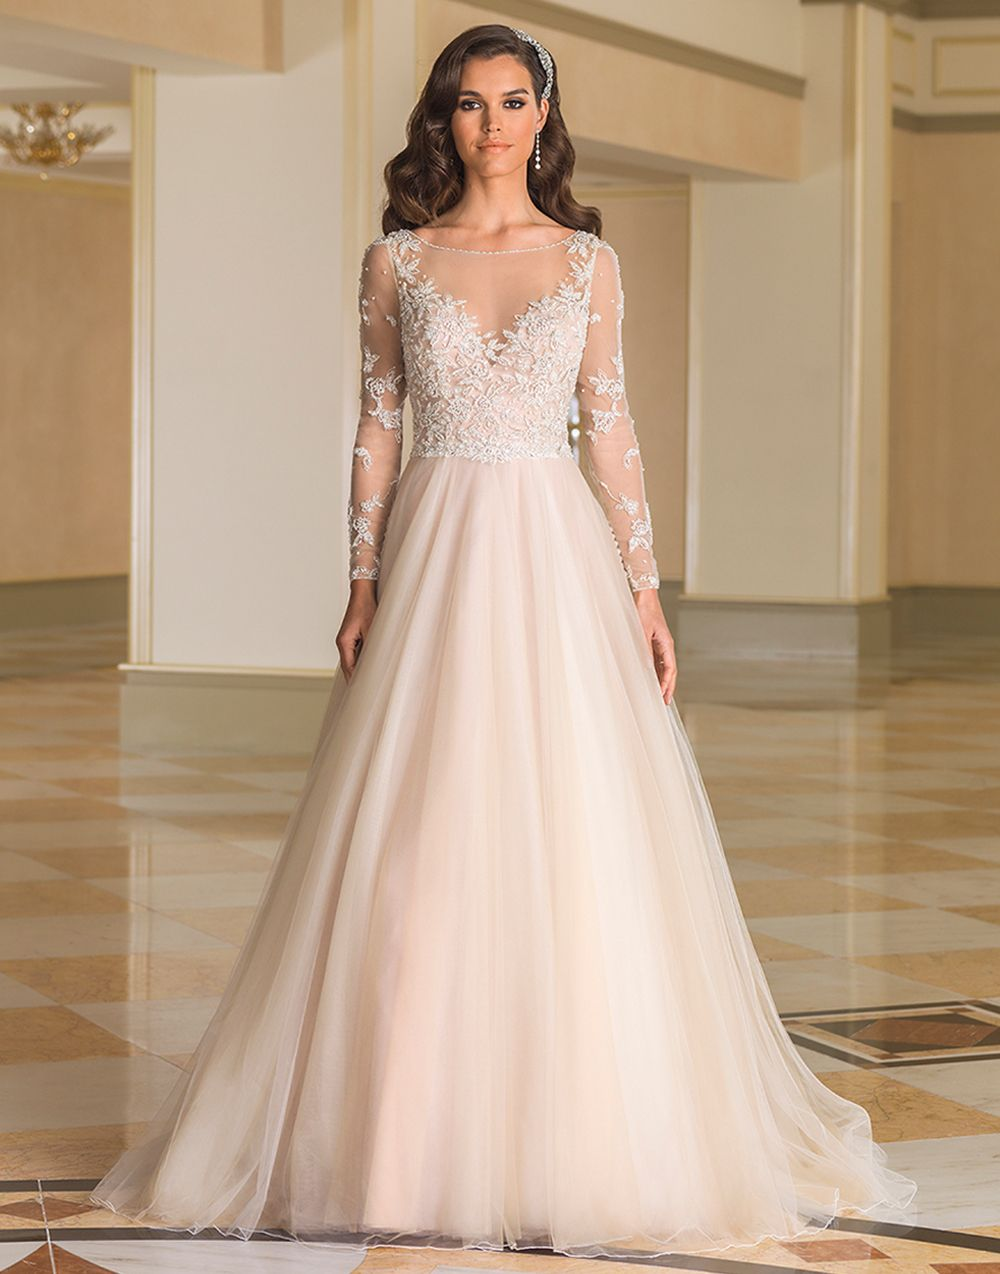 Justin alexander wedding dresses style in illusion